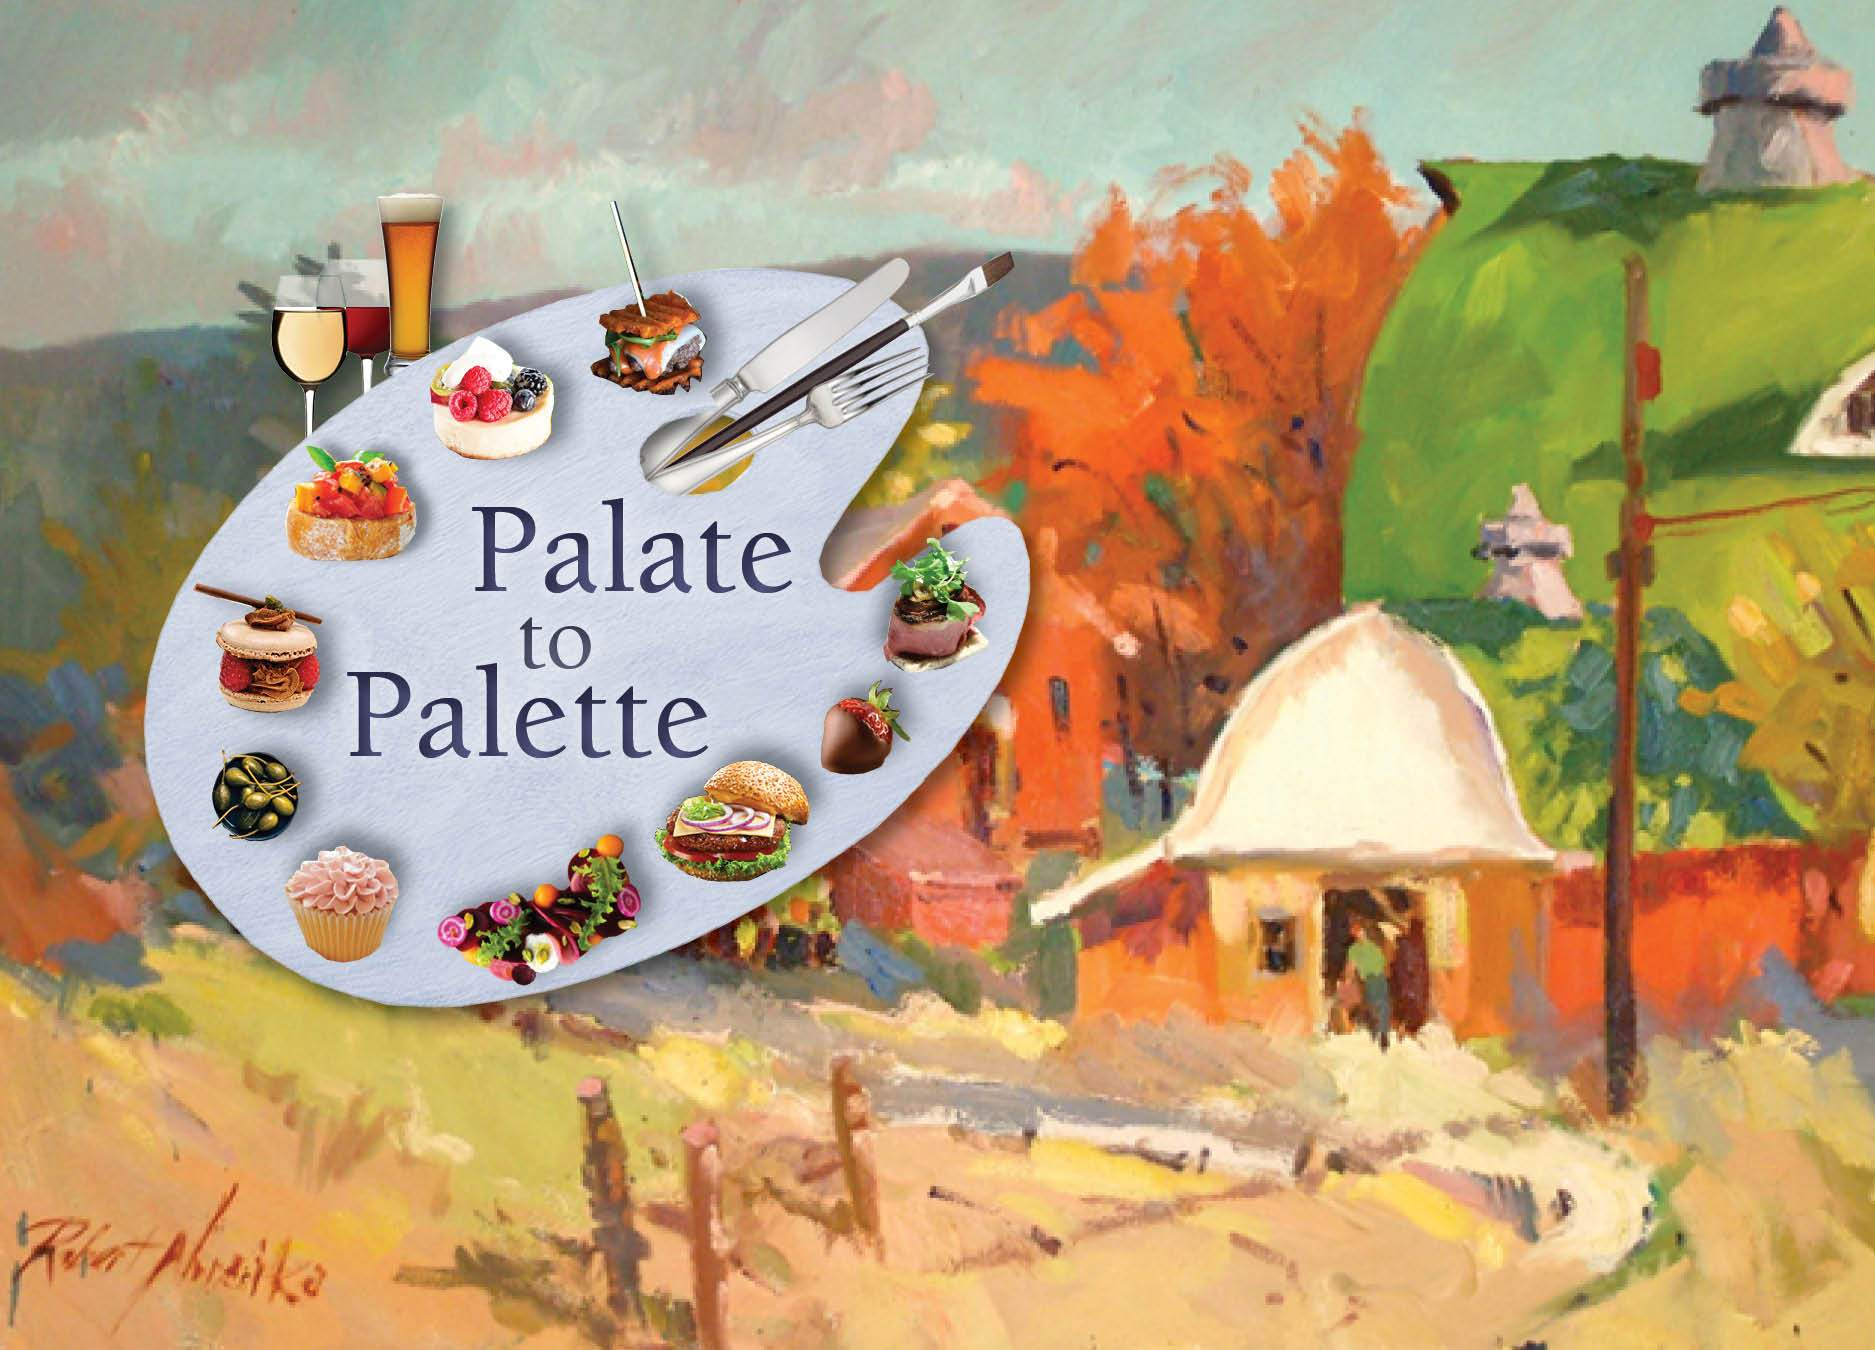 Palate to Palette ~ A Delicious and Art-Filled Fundraiser for the Lyme Art Association